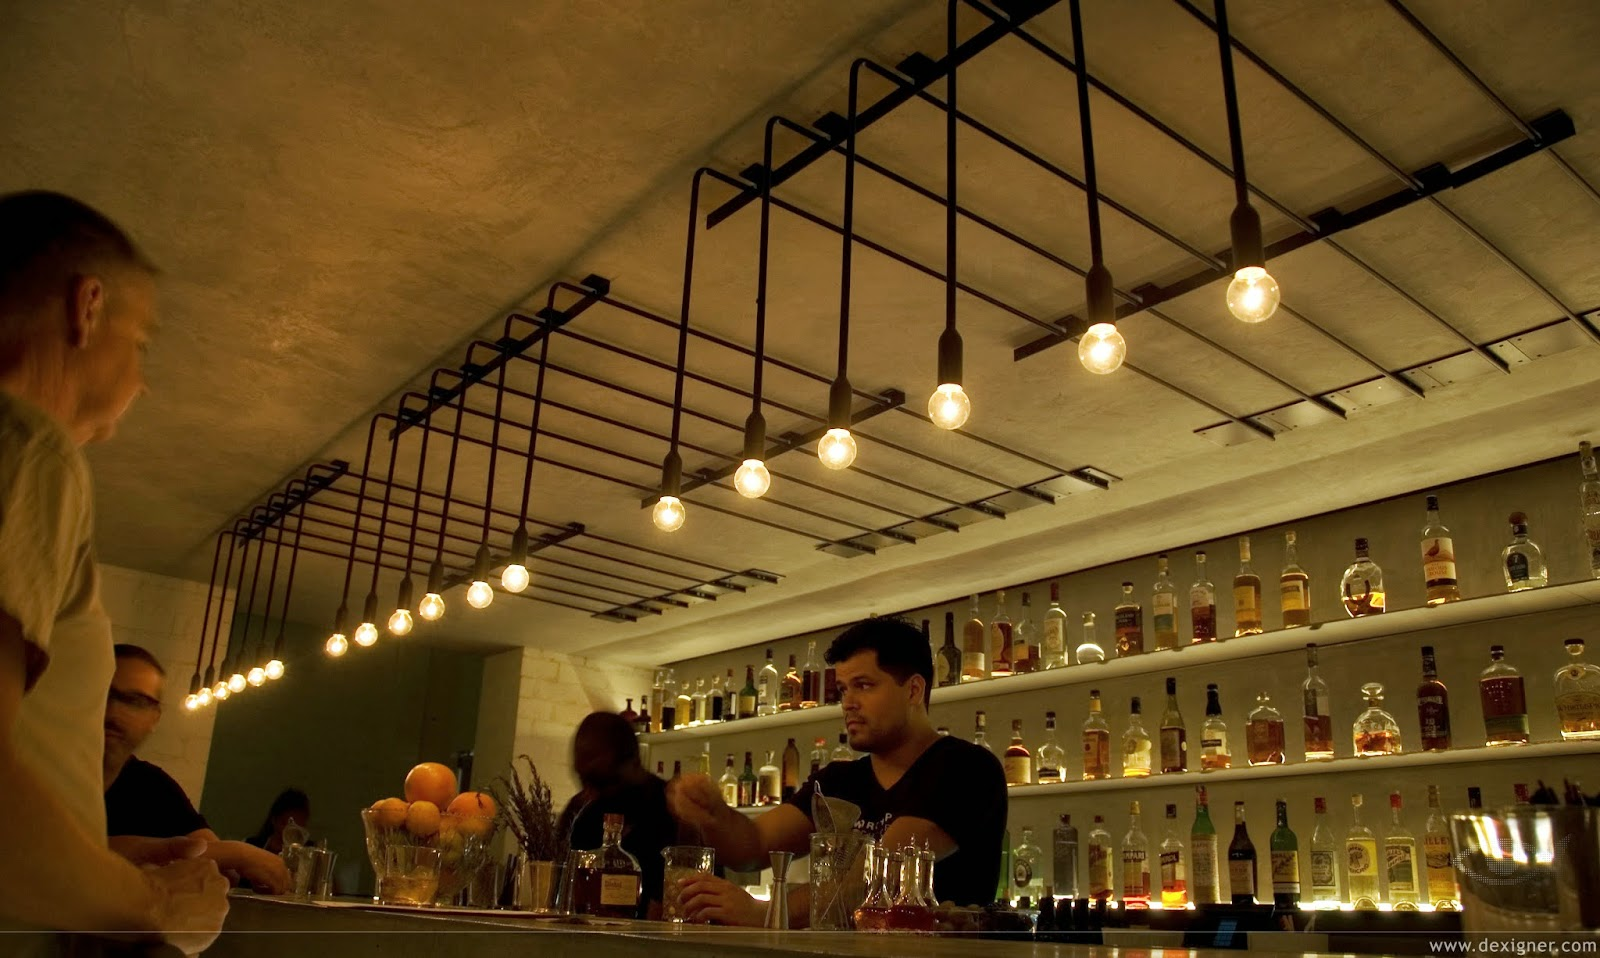 Industrial Design Ceiling Lights : Let s stay industrial design ceiling light restaurant